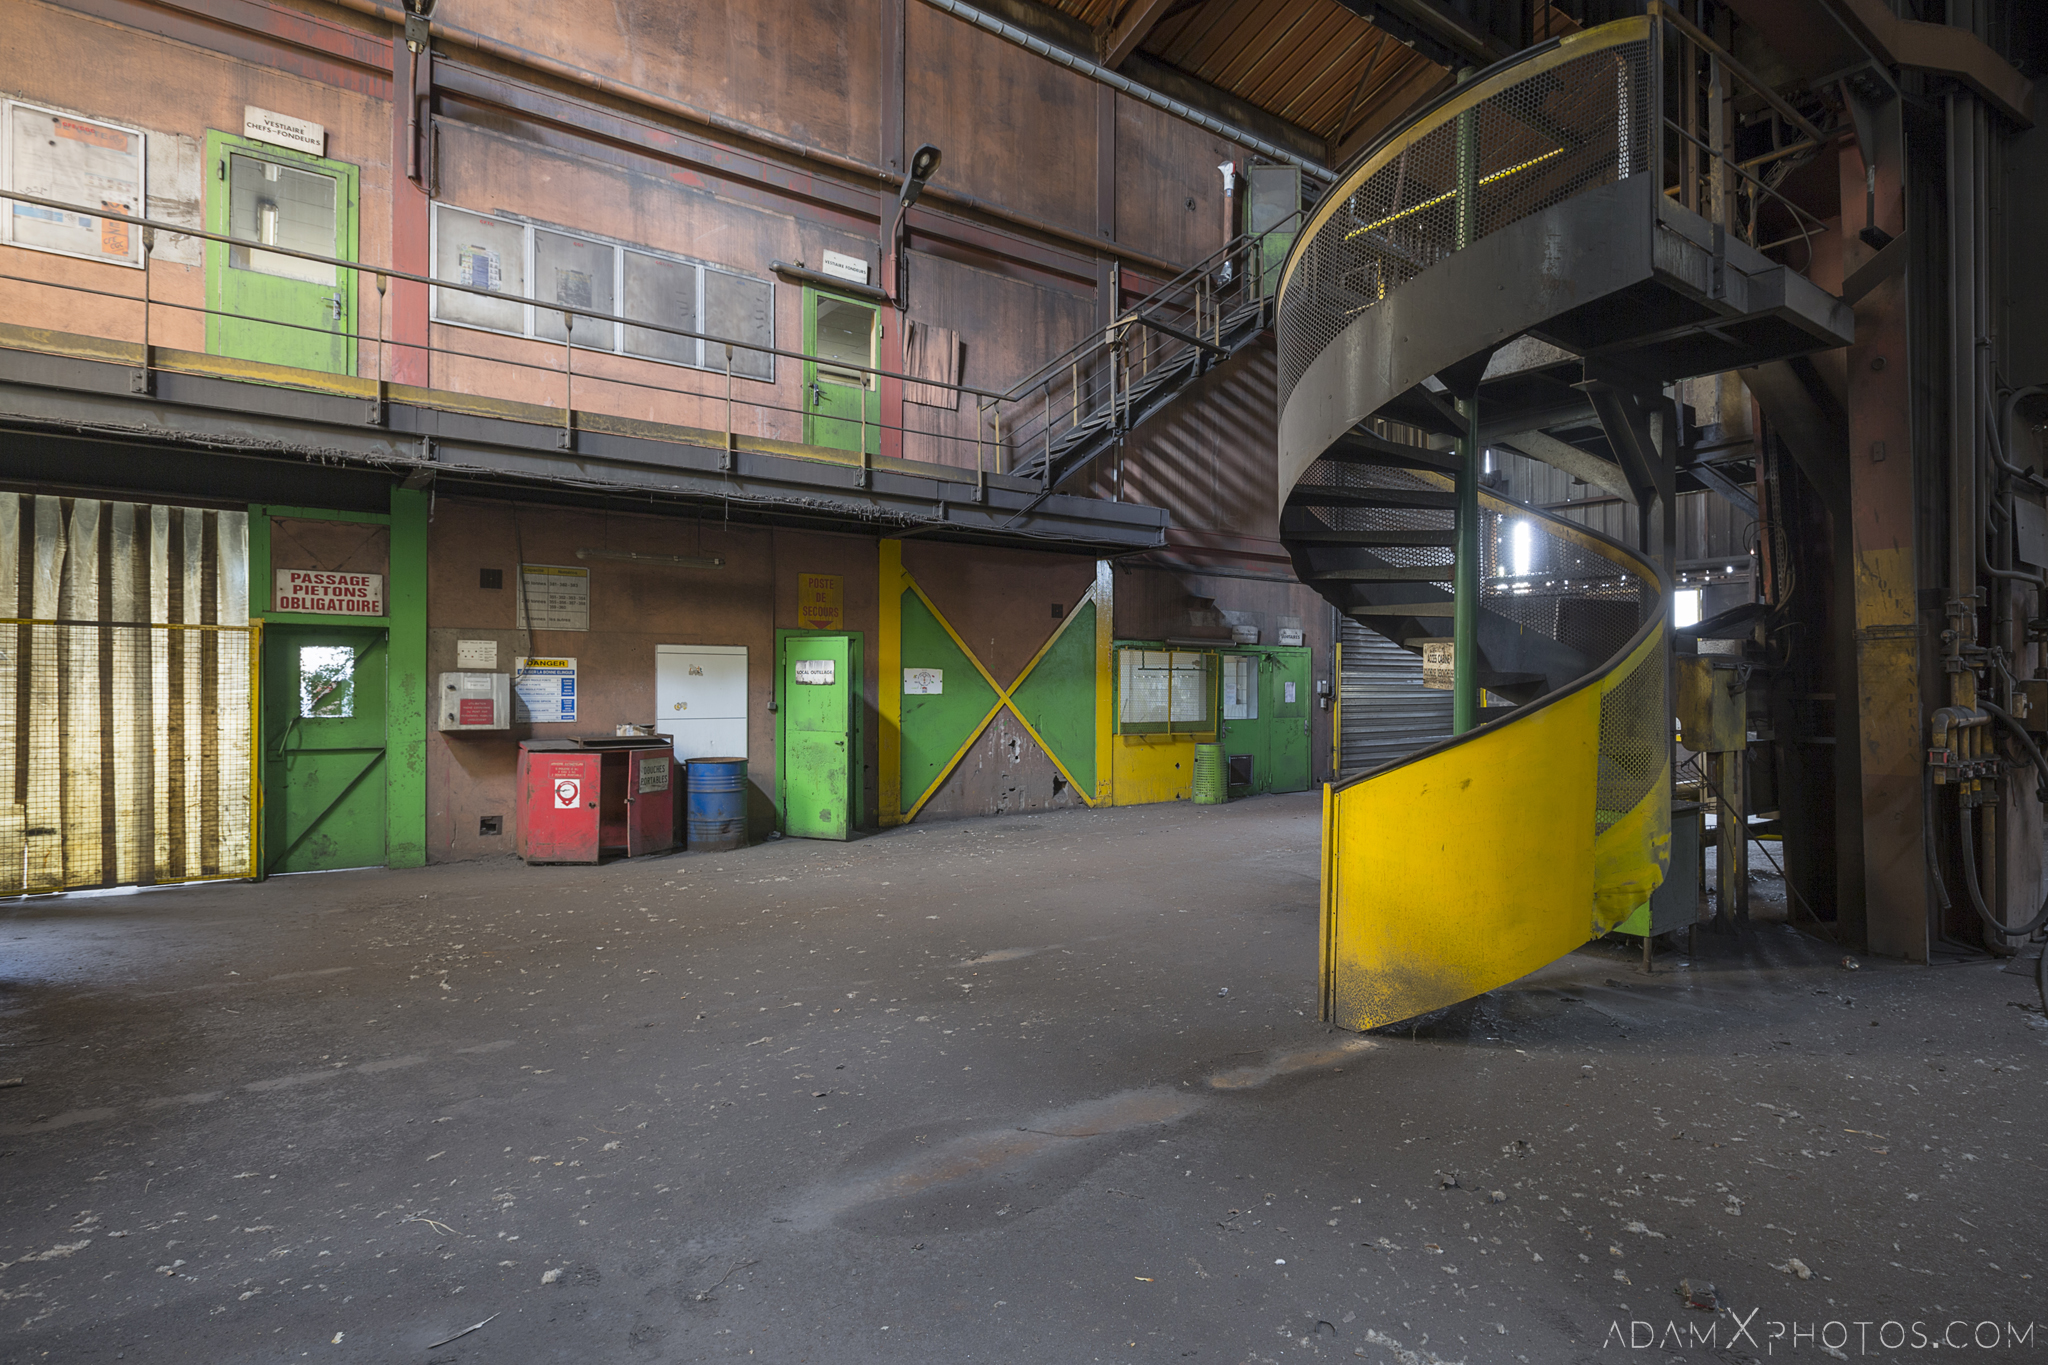 spiral stairs staircase yellow green HFX Florange Hayange ArcelorMittal blast furnaces steel works plant Industrial Industry Adam X Urbex Urban Exploration France Access 2017 Abandoned decay lost forgotten derelict location creepy haunting eerie